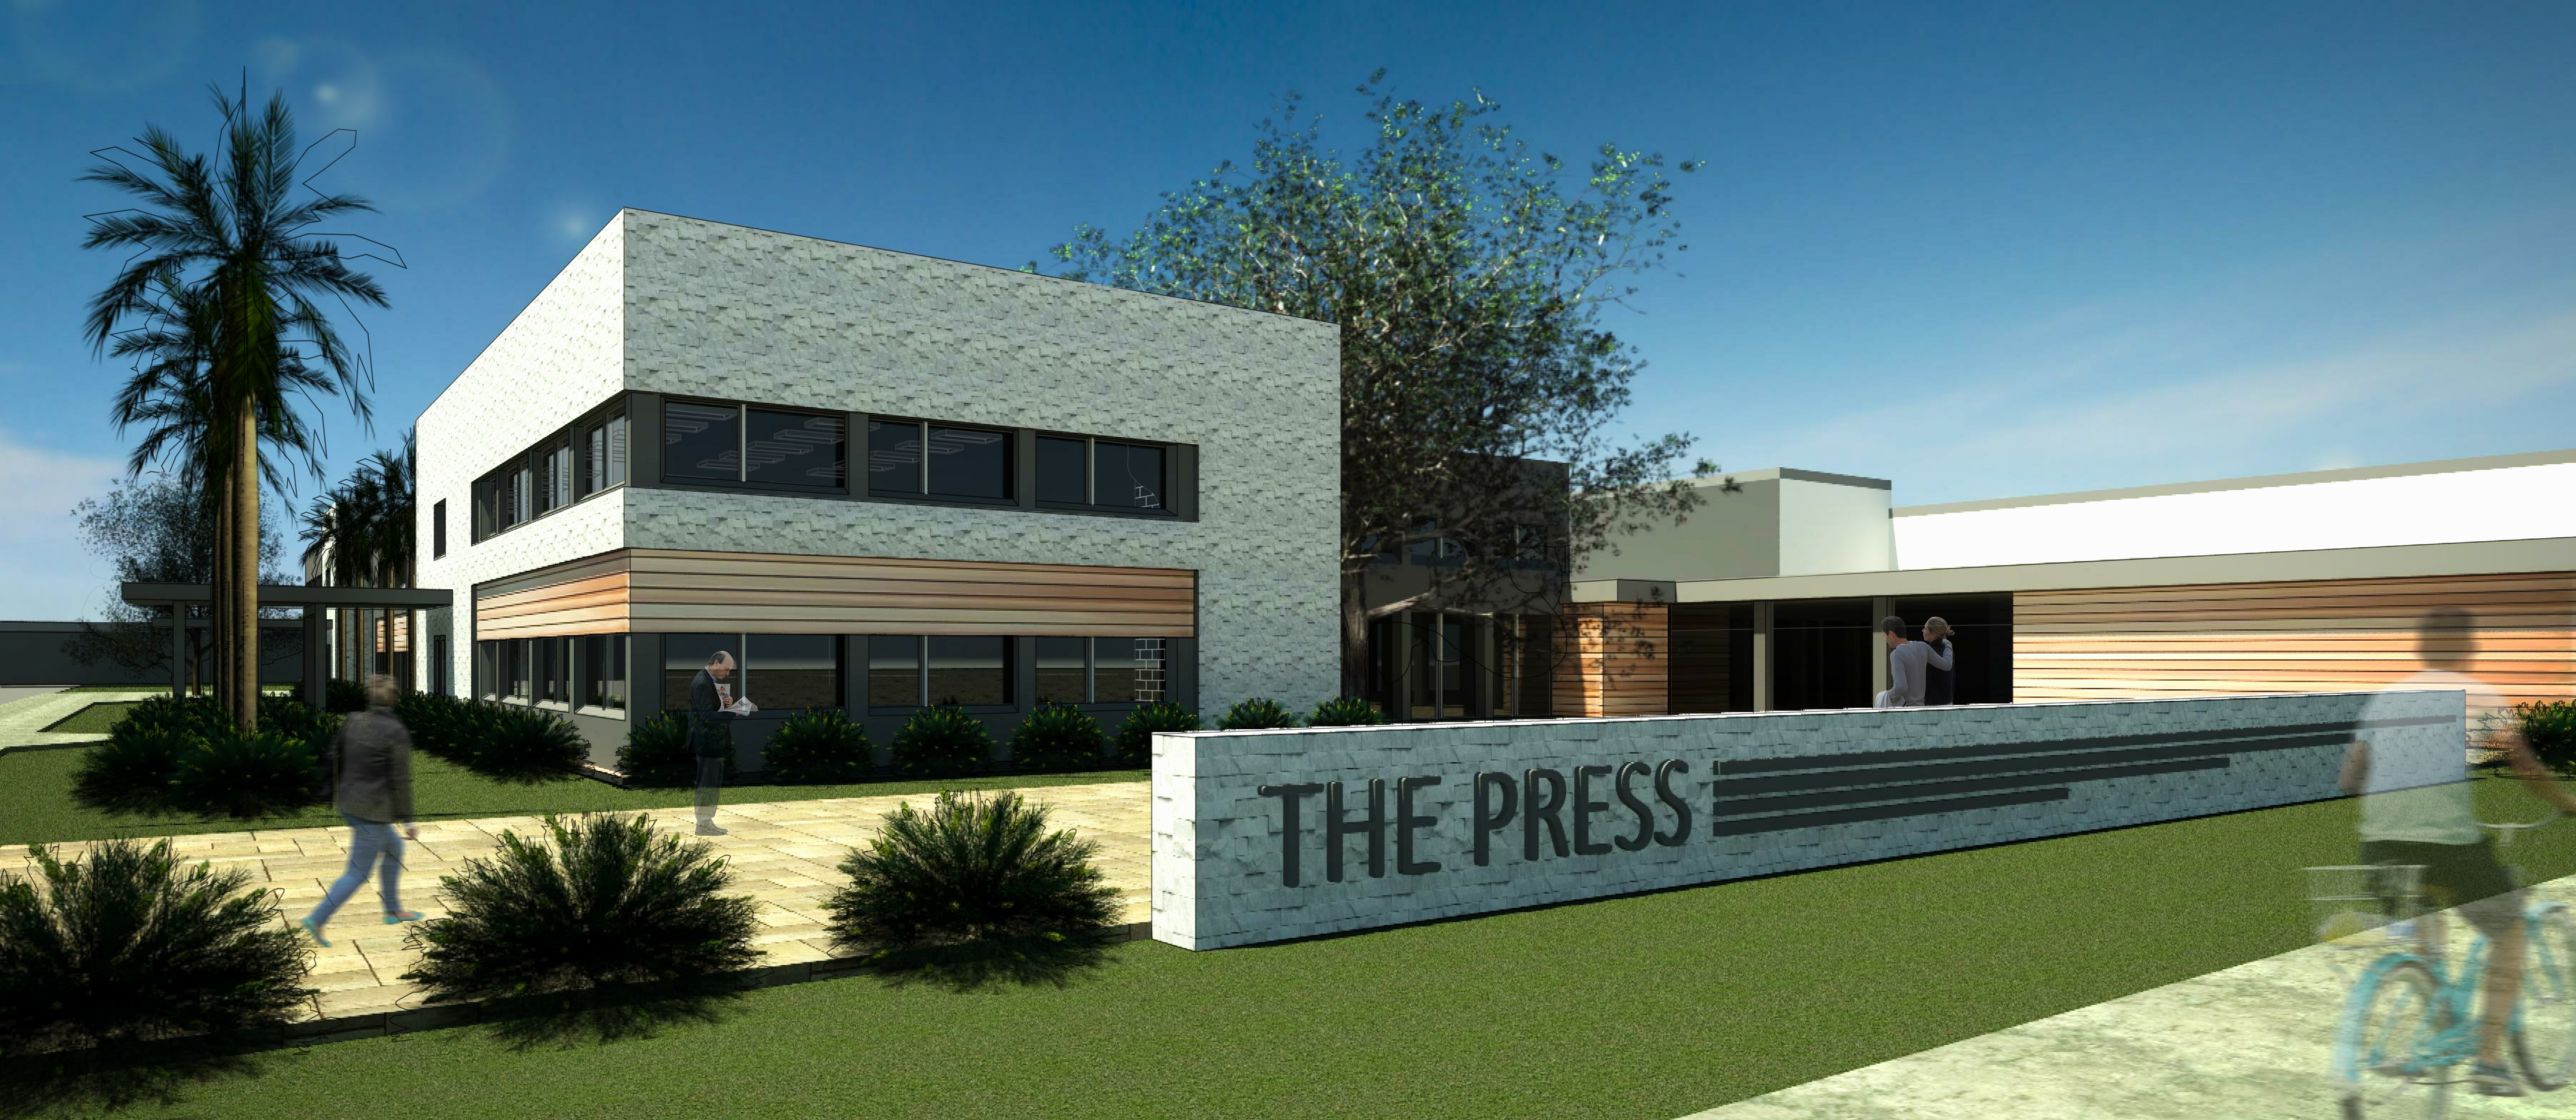 The Press Remodel